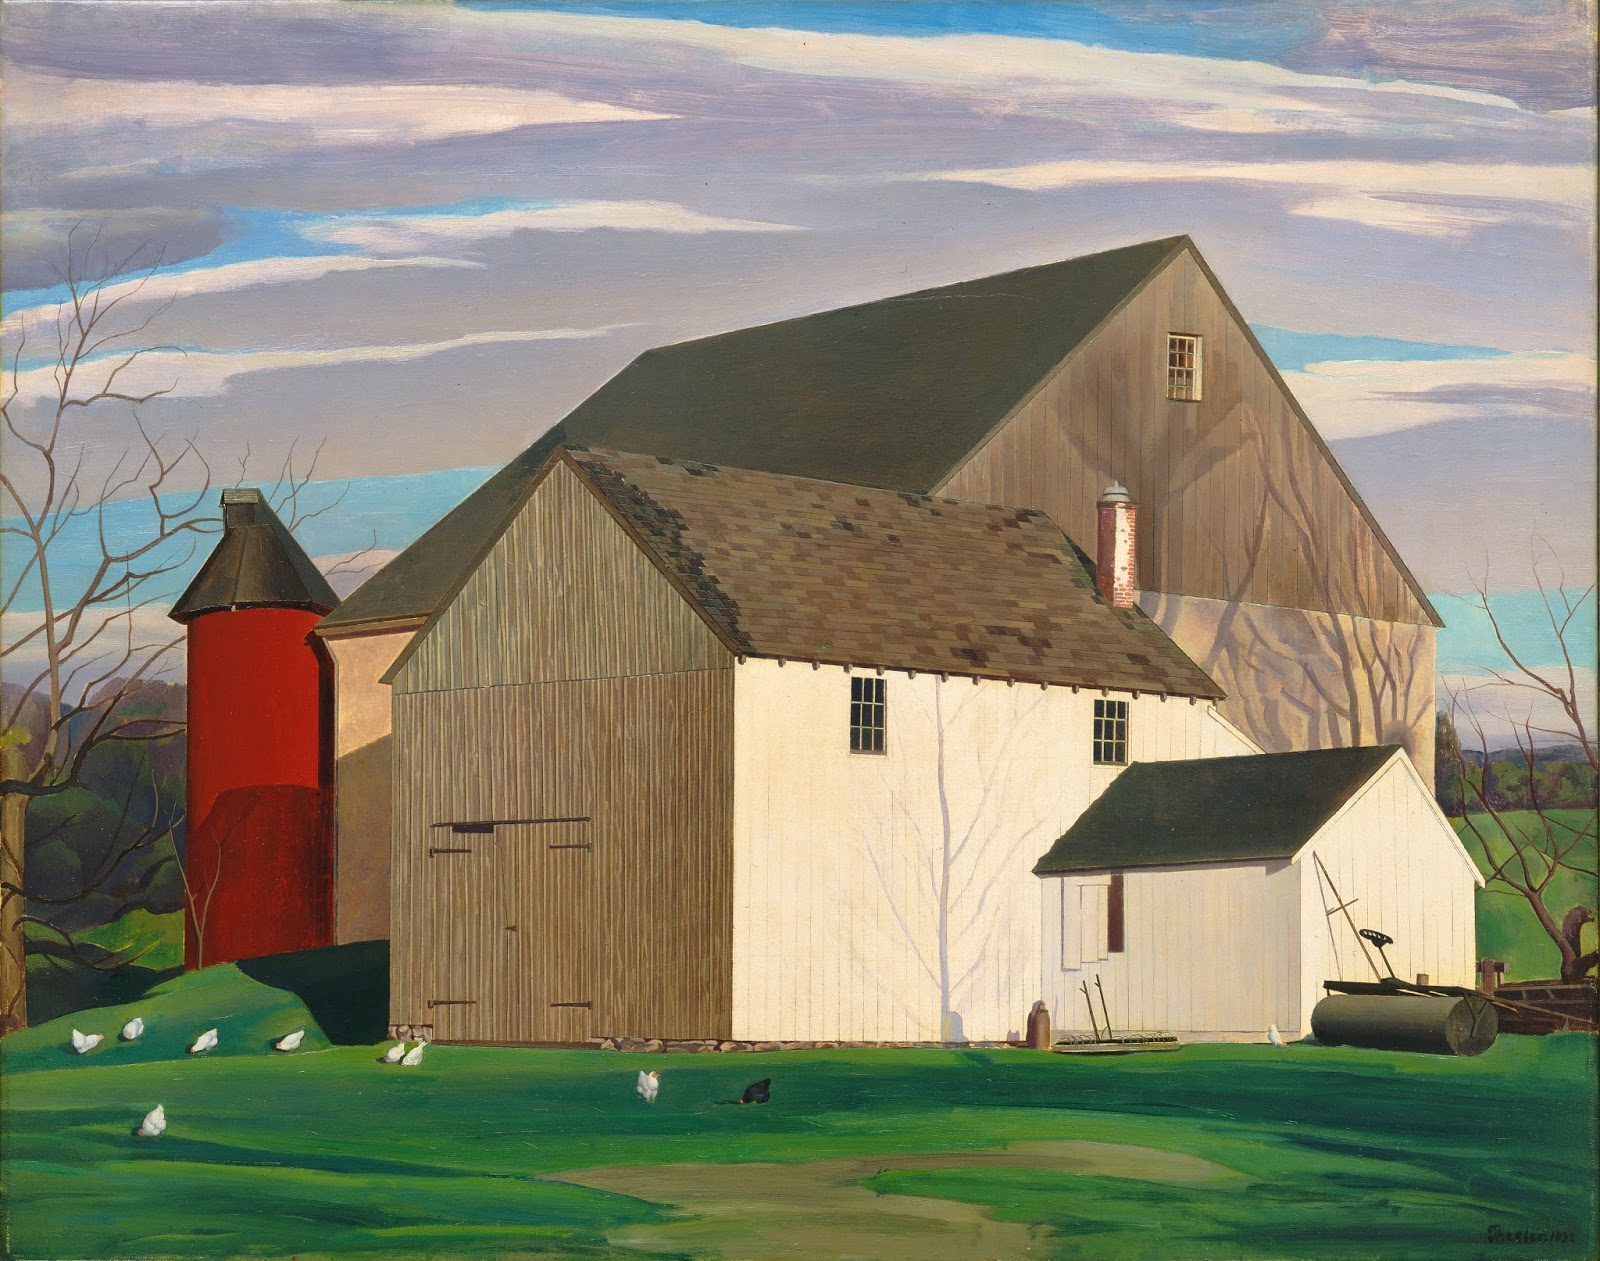 bucks county barn essay In bucks county barn (1923) he applied the cubist doctrine to an american countryside subject the most comprehensive work on sheeler is the national collection of fine arts catalog, charles sheeler (1969), which includes essays by martin friedman, bartlett hayes, and charles millard and a complete chronological.